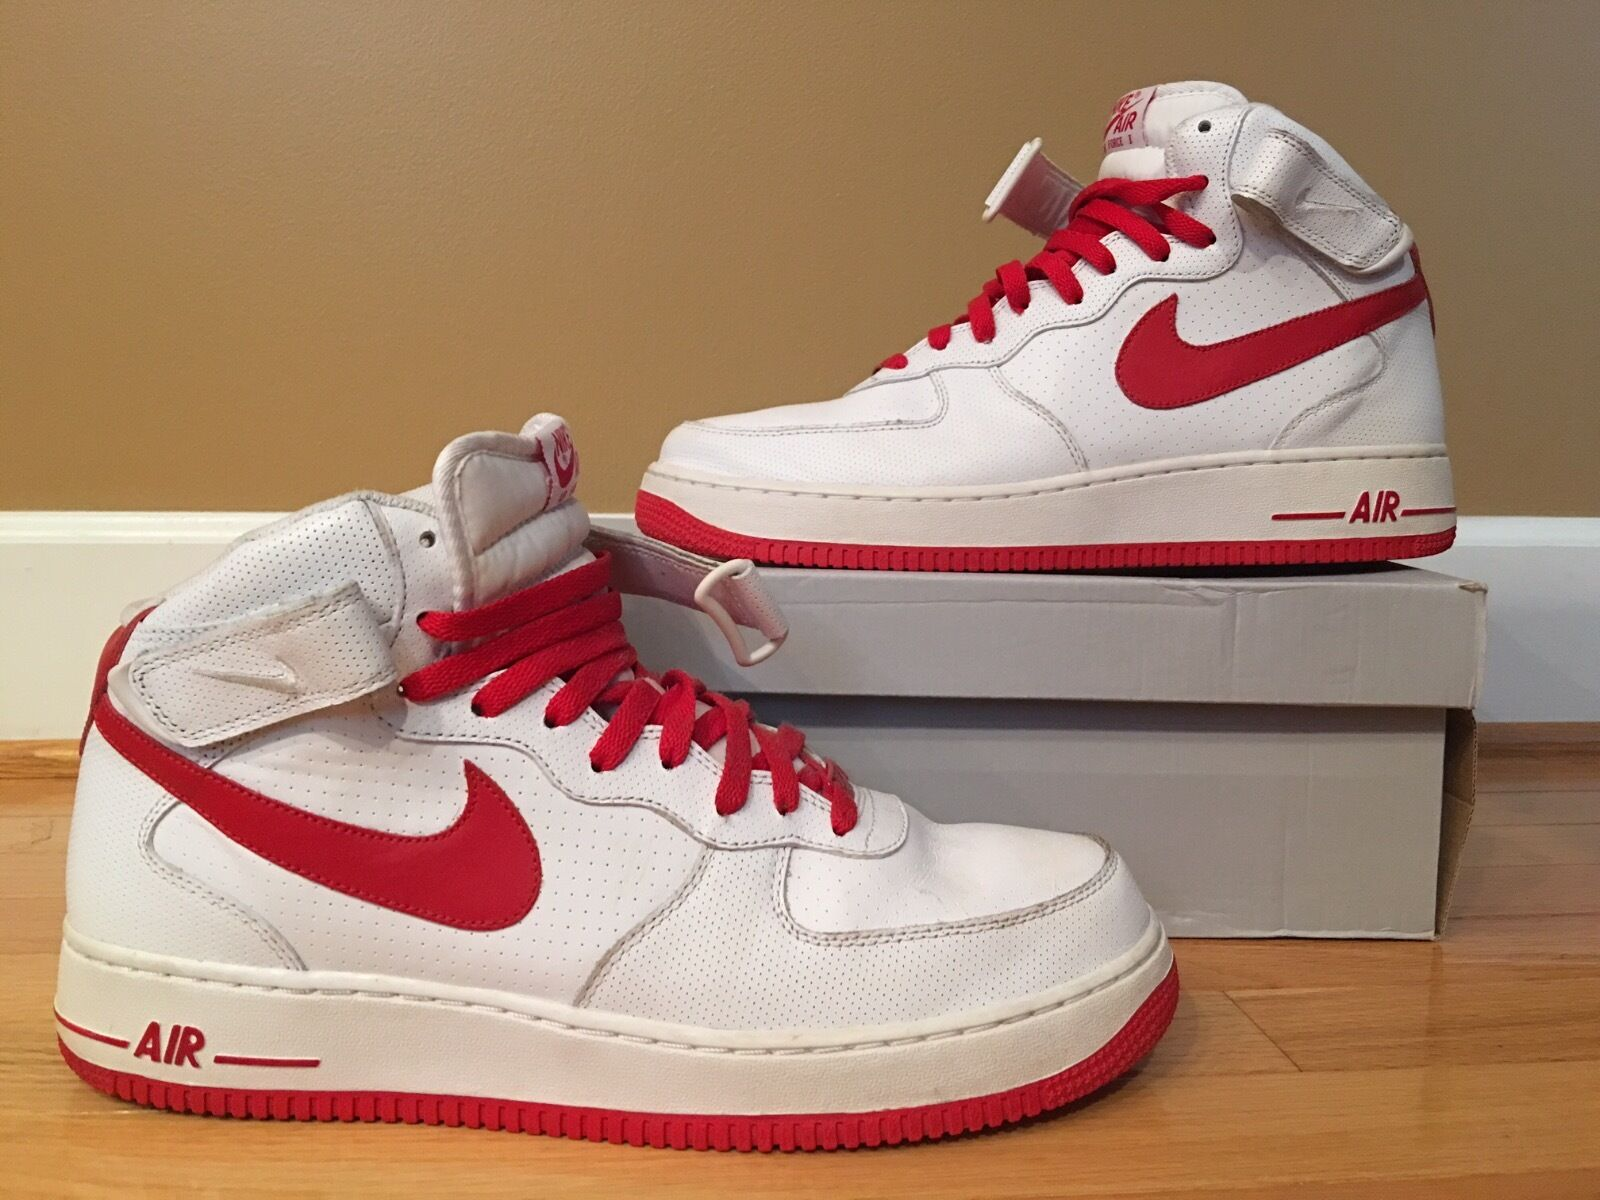 Nike Air Force 1 White Varsity Red